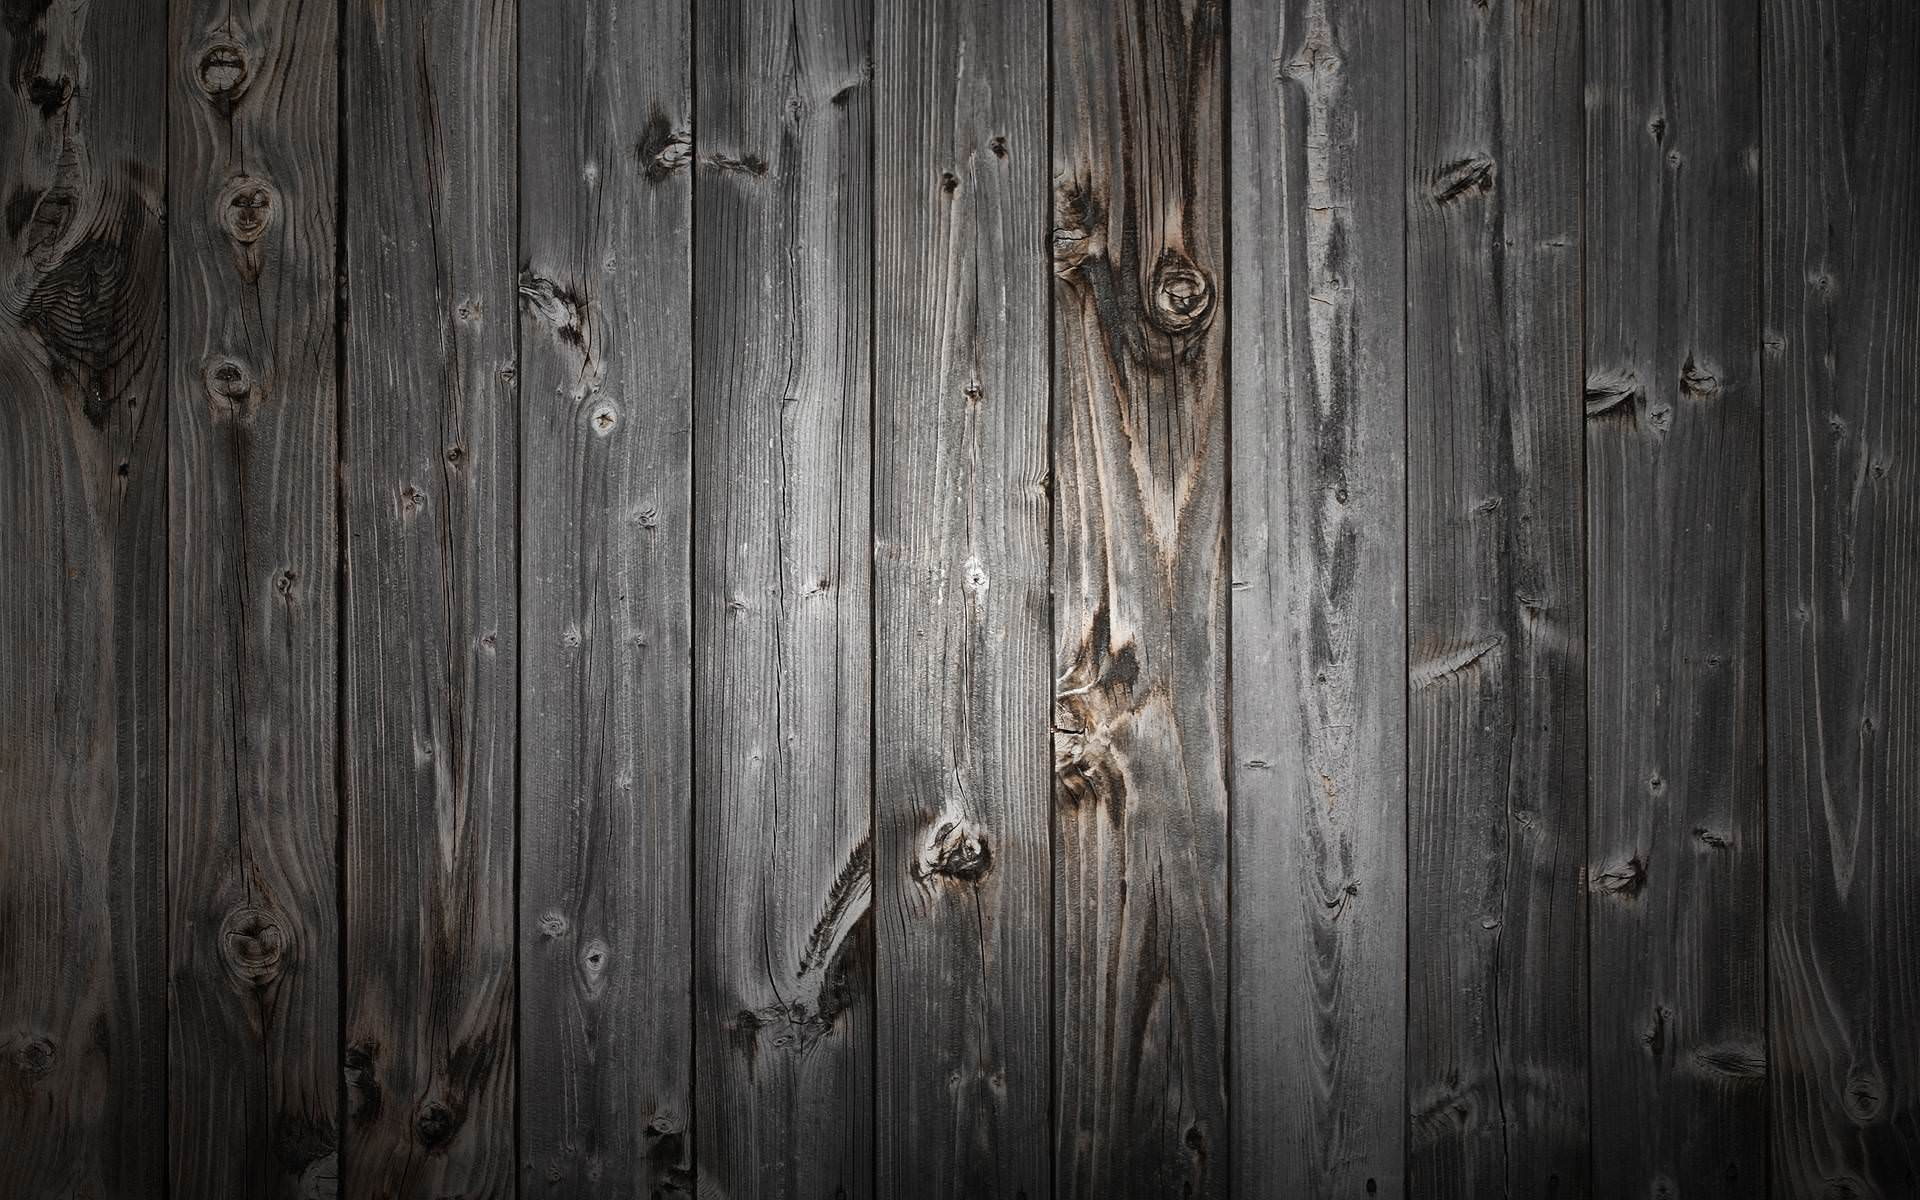 Black Wood Background with Grunge Effect